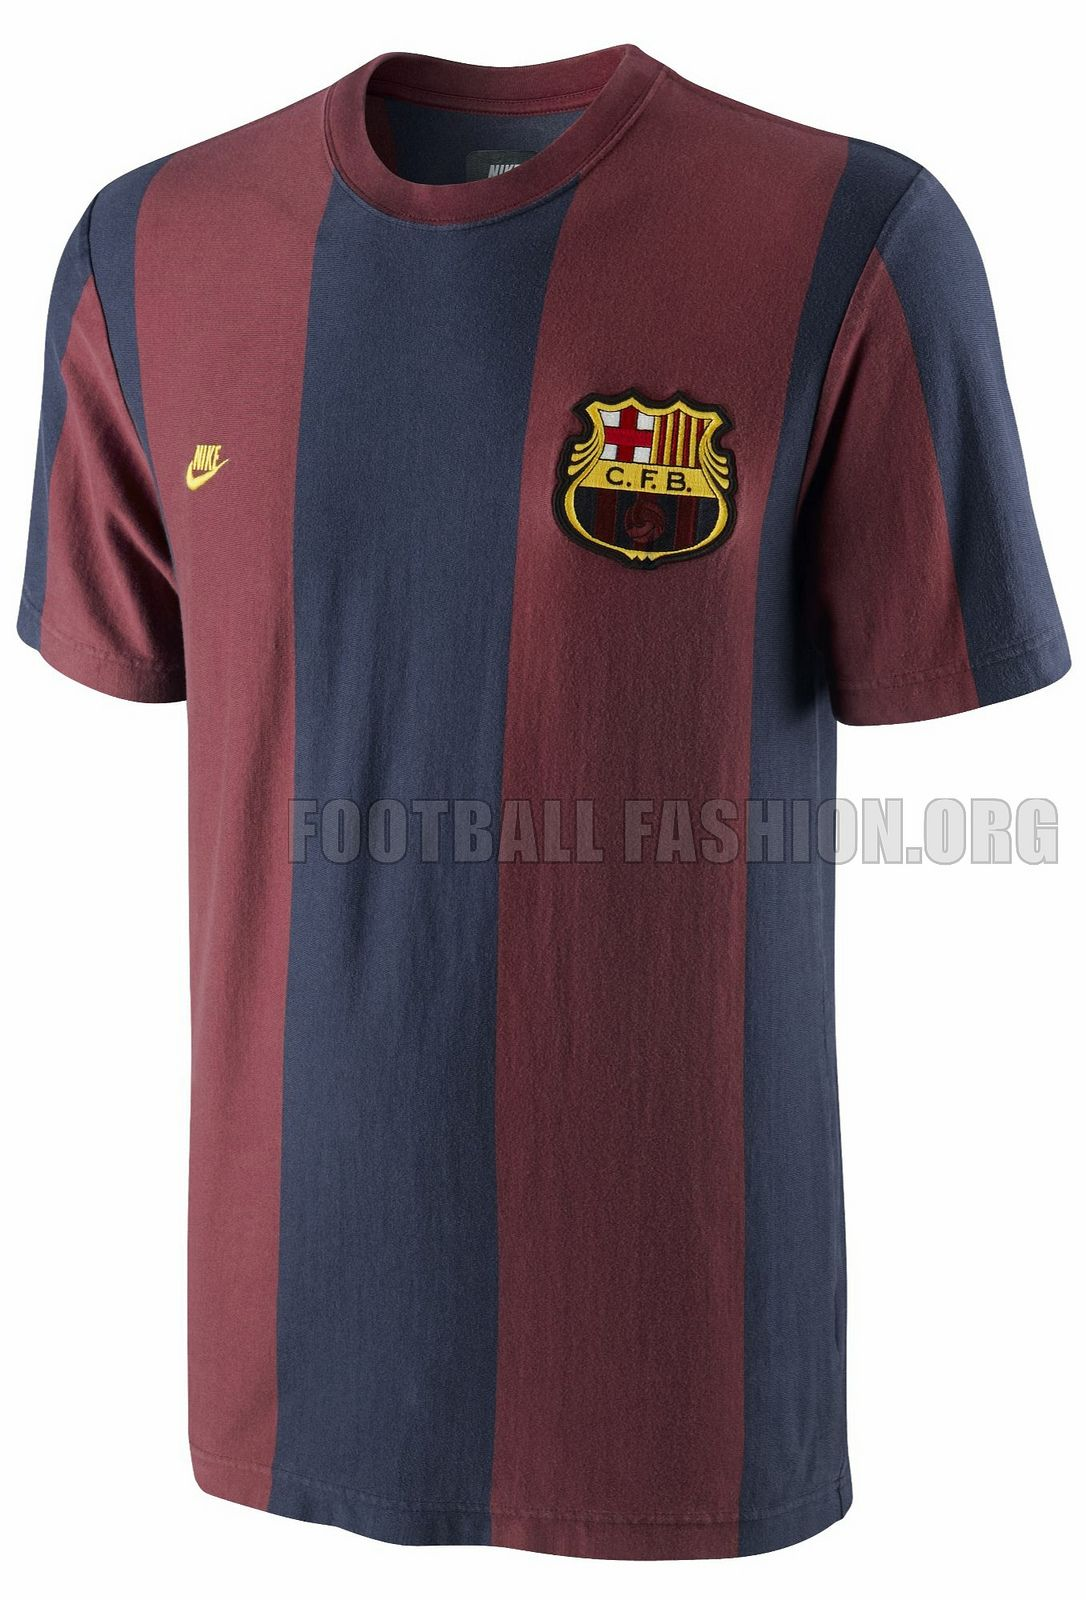 Nike mexico jersey 2017 one pen one page - Fc Barcelona Nike Covert Vintage 73 Throwback Shirt